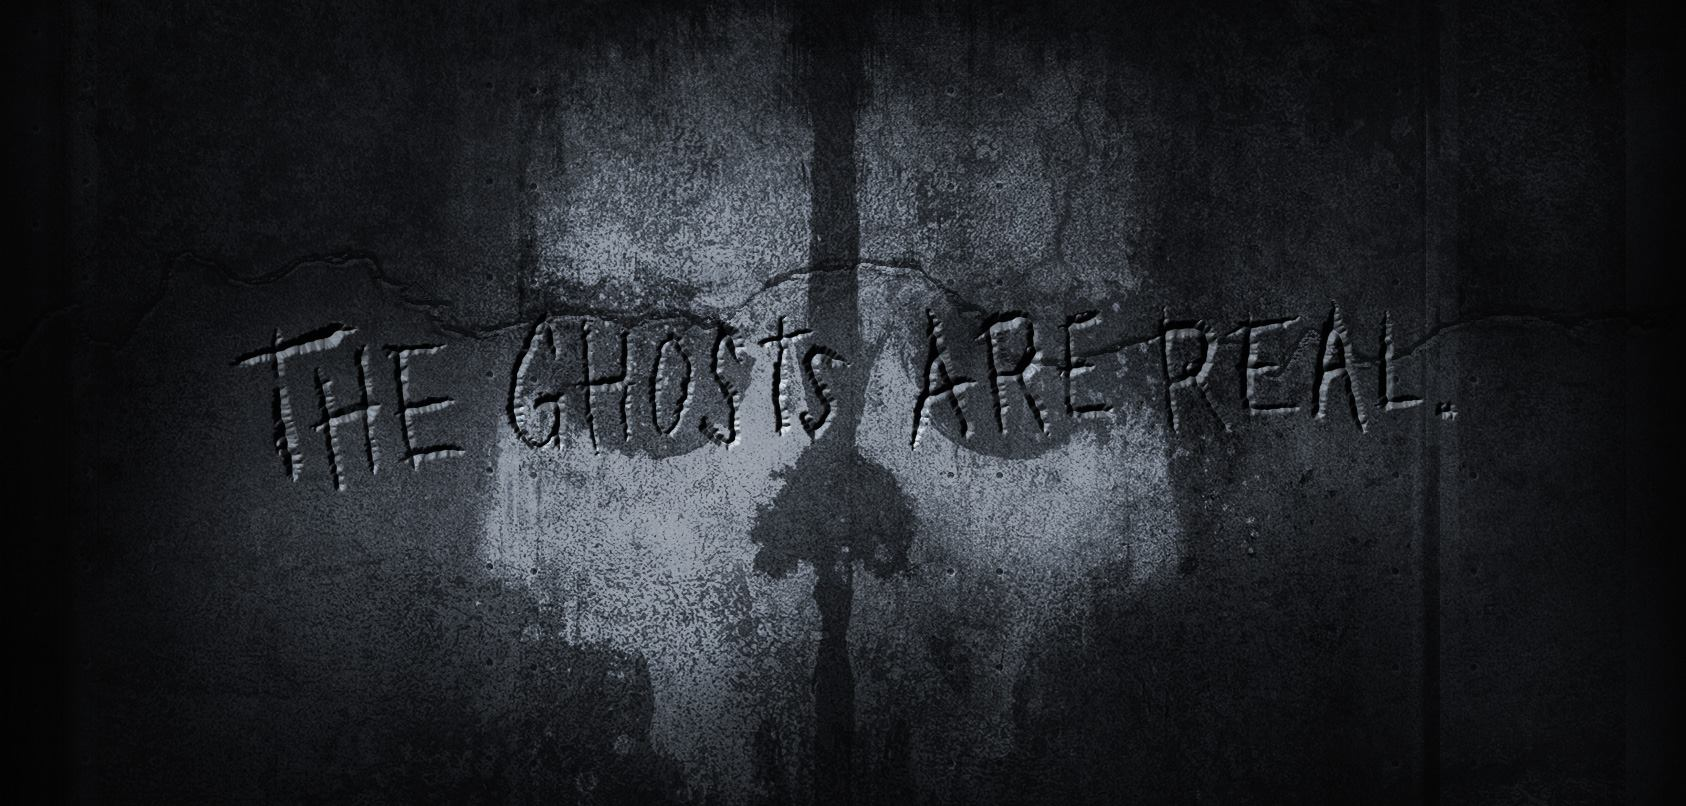 Call Of Duty Ghosts Live Wallpaper